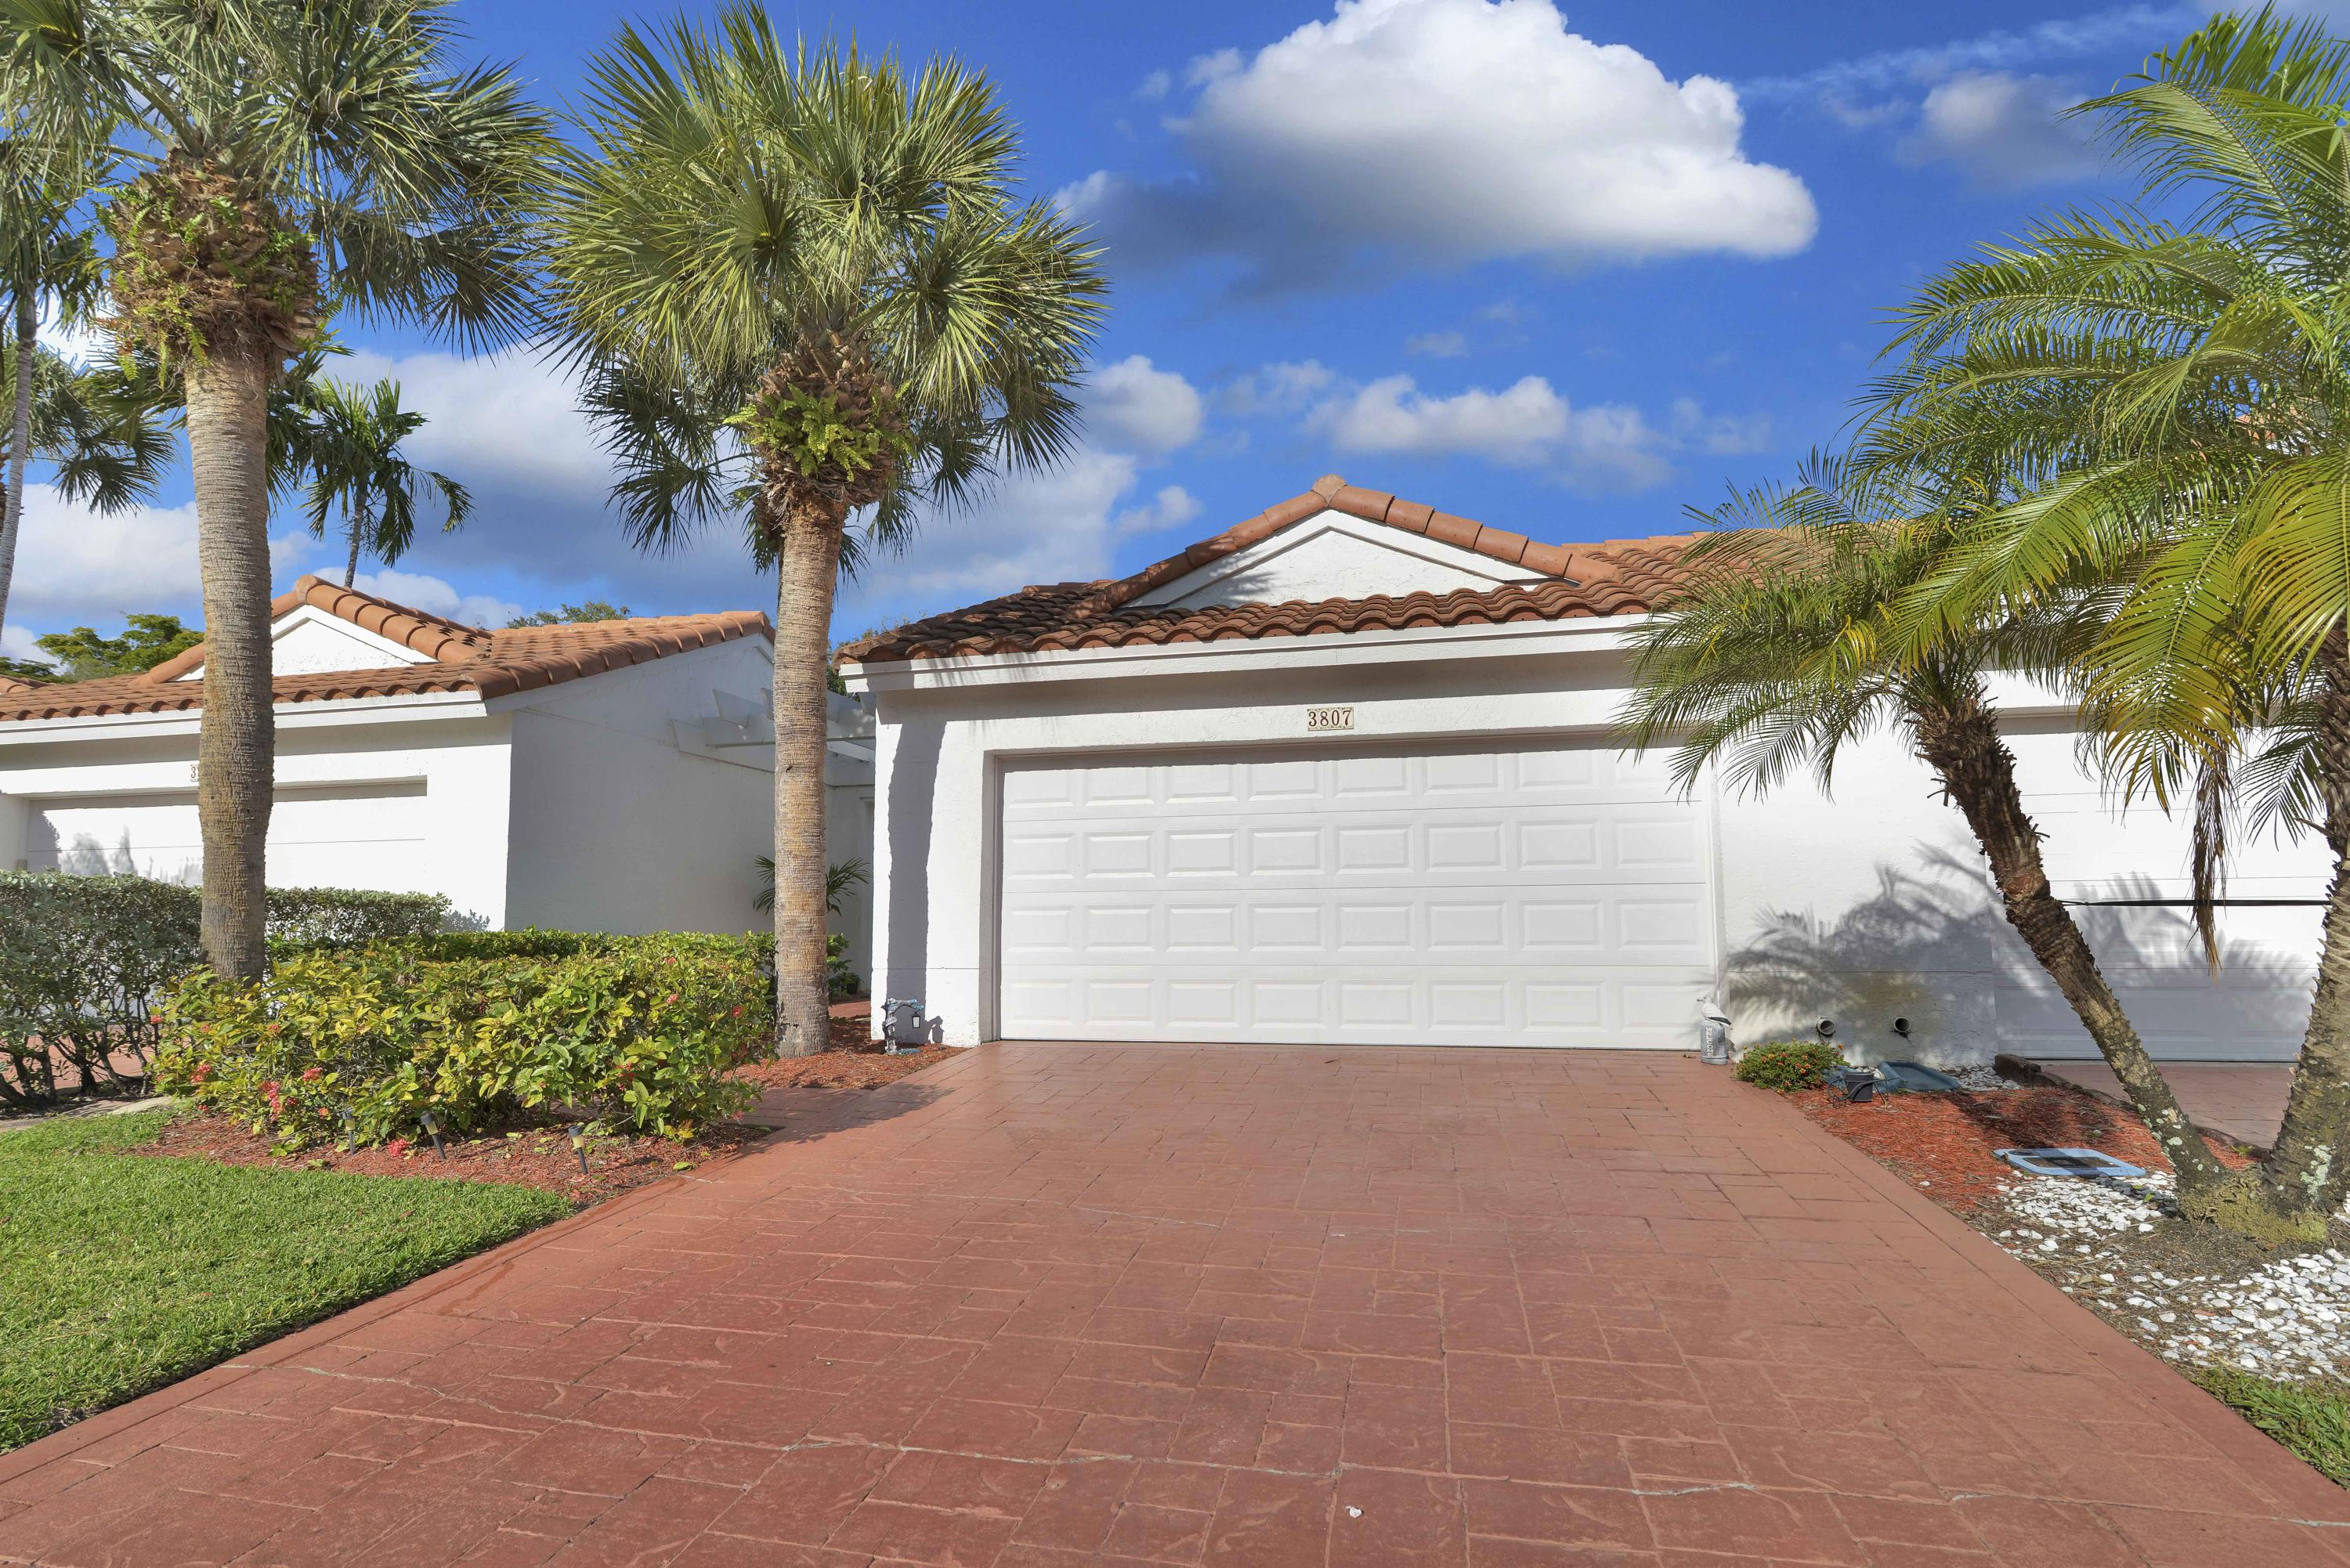 3807 Candlewood Court, Boca Raton, Florida 33487, 3 Bedrooms Bedrooms, ,2 BathroomsBathrooms,Single Family,For Sale,BOCA COUNTRY CLUB,Candlewood,RX-10504317